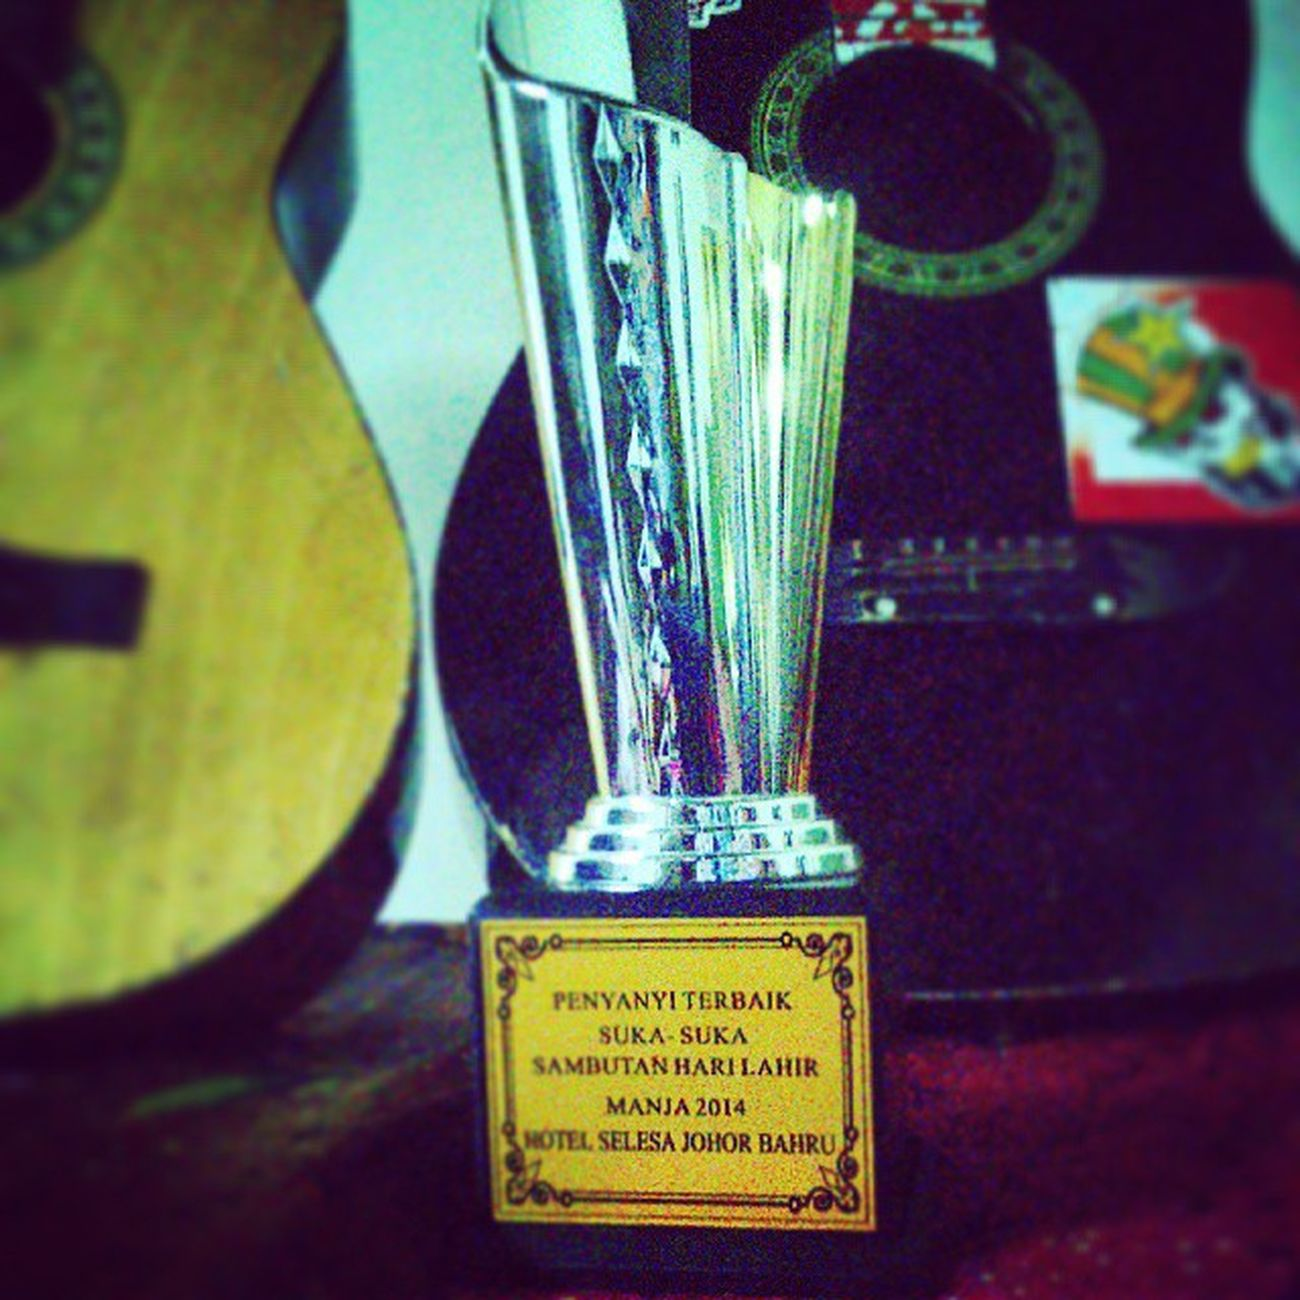 Alhamdulillah, selesai events bday party as M.C.. Even trophy tak sehebat anugerah industry musik Malaysia dan luck sbb tak ramai cotestant, but thankfully I won this trophy today.. Alhamdulillah.. Yeayyy... Contest judges by Awang BPR, thanks for inviting me to your party Kak Manja admin Kelab Penyokong Johor Darul Takzim. 1st Prize Trophy for me!!!! Nyanyisukasuka Bestsinger